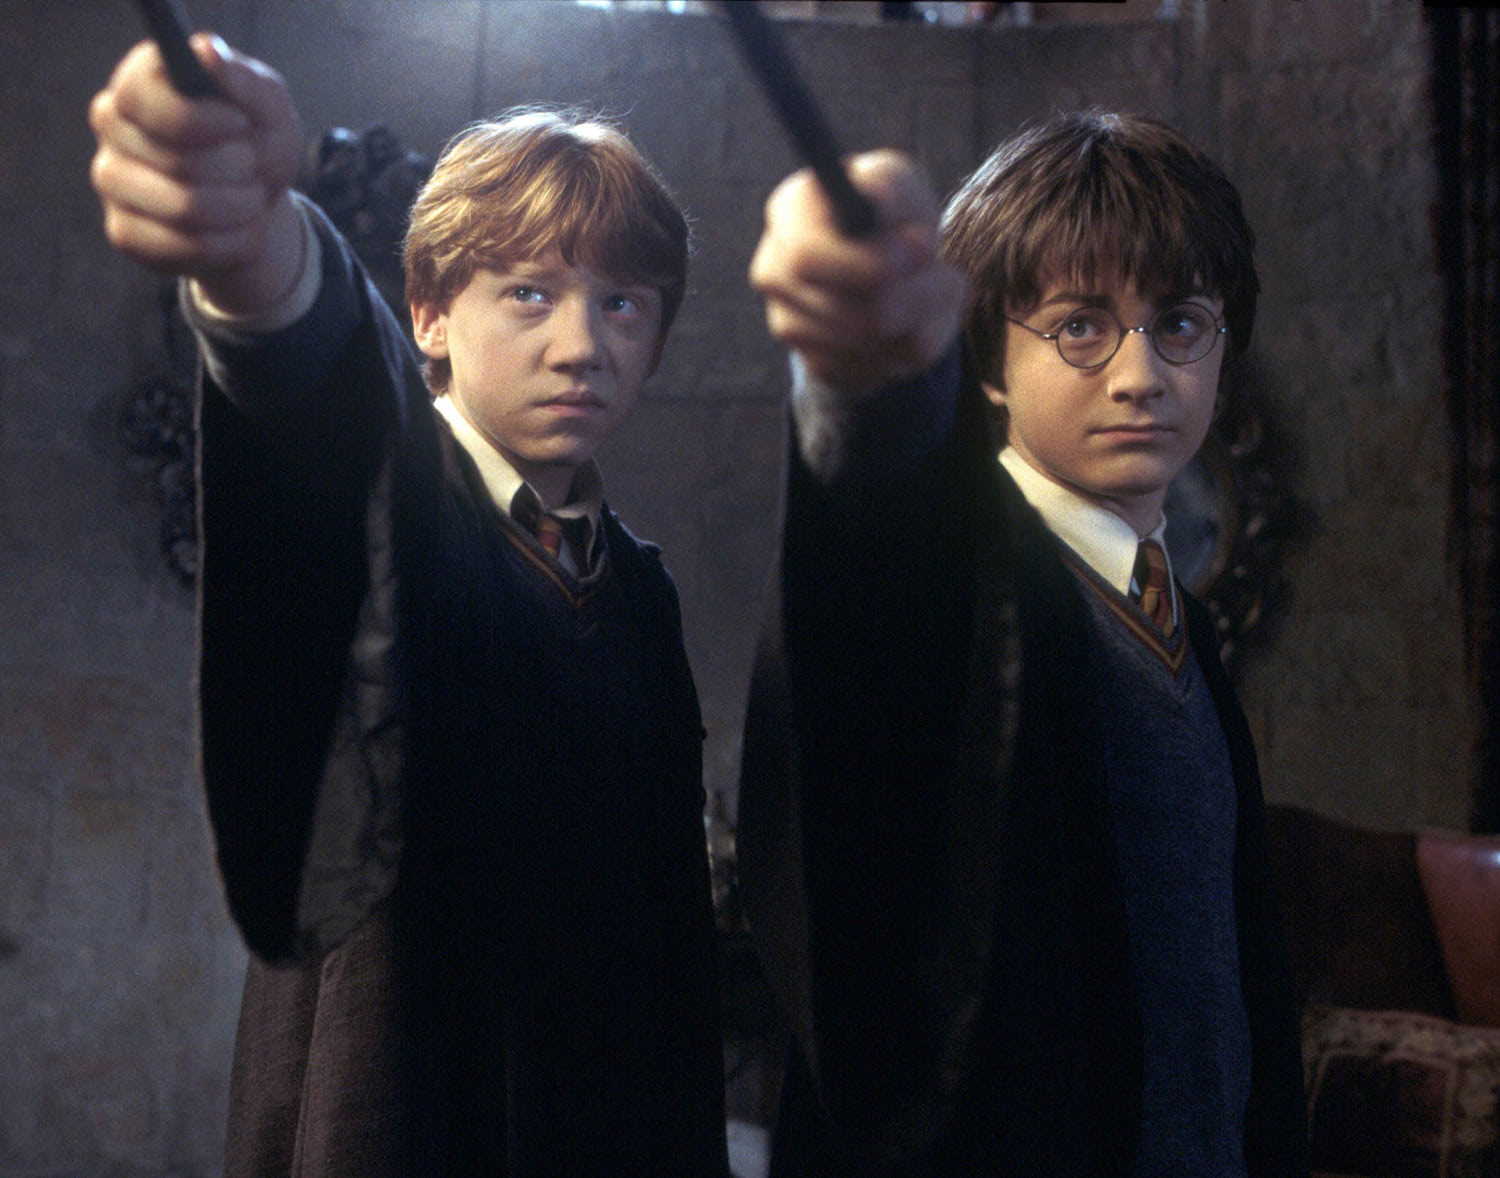 Harry and Ron with wands at the ready